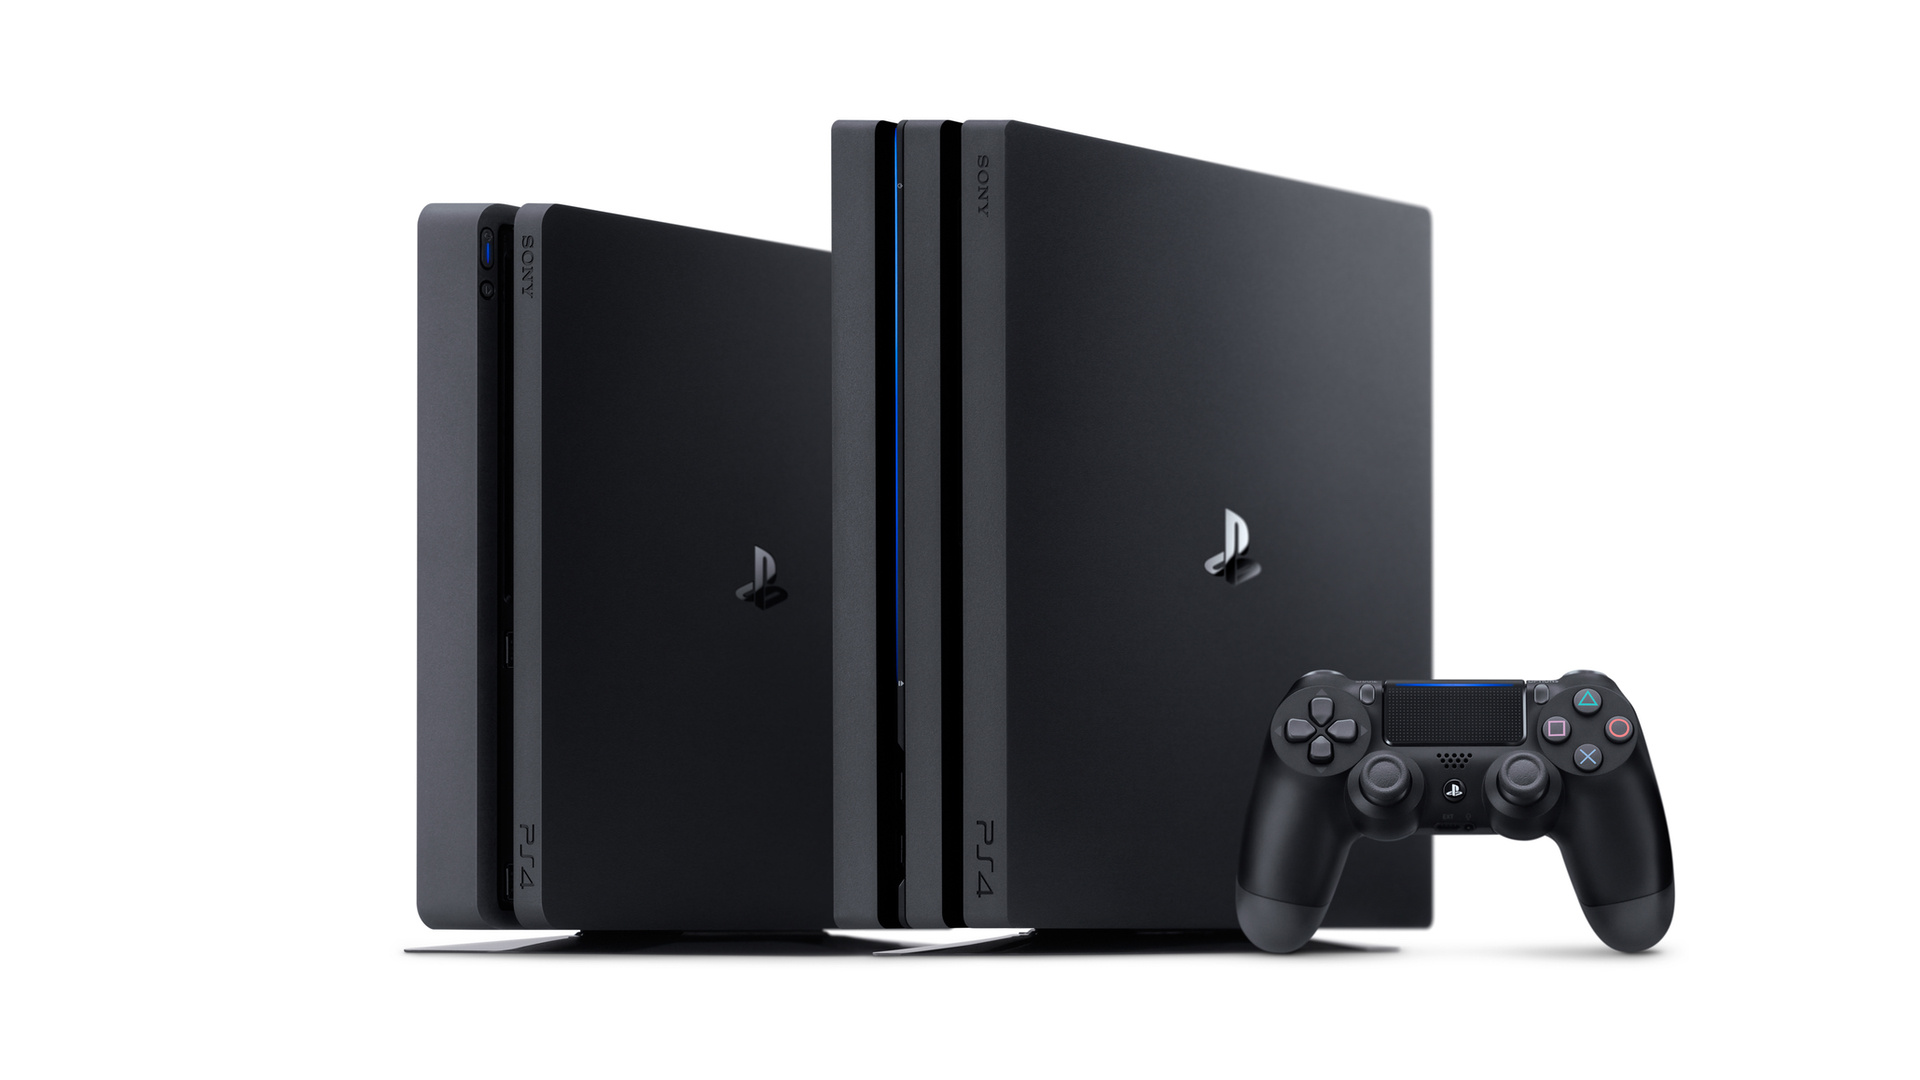 Guide: PS4, PSVR, PS3, Vita - Which Should You Buy the Kids for Christmas?